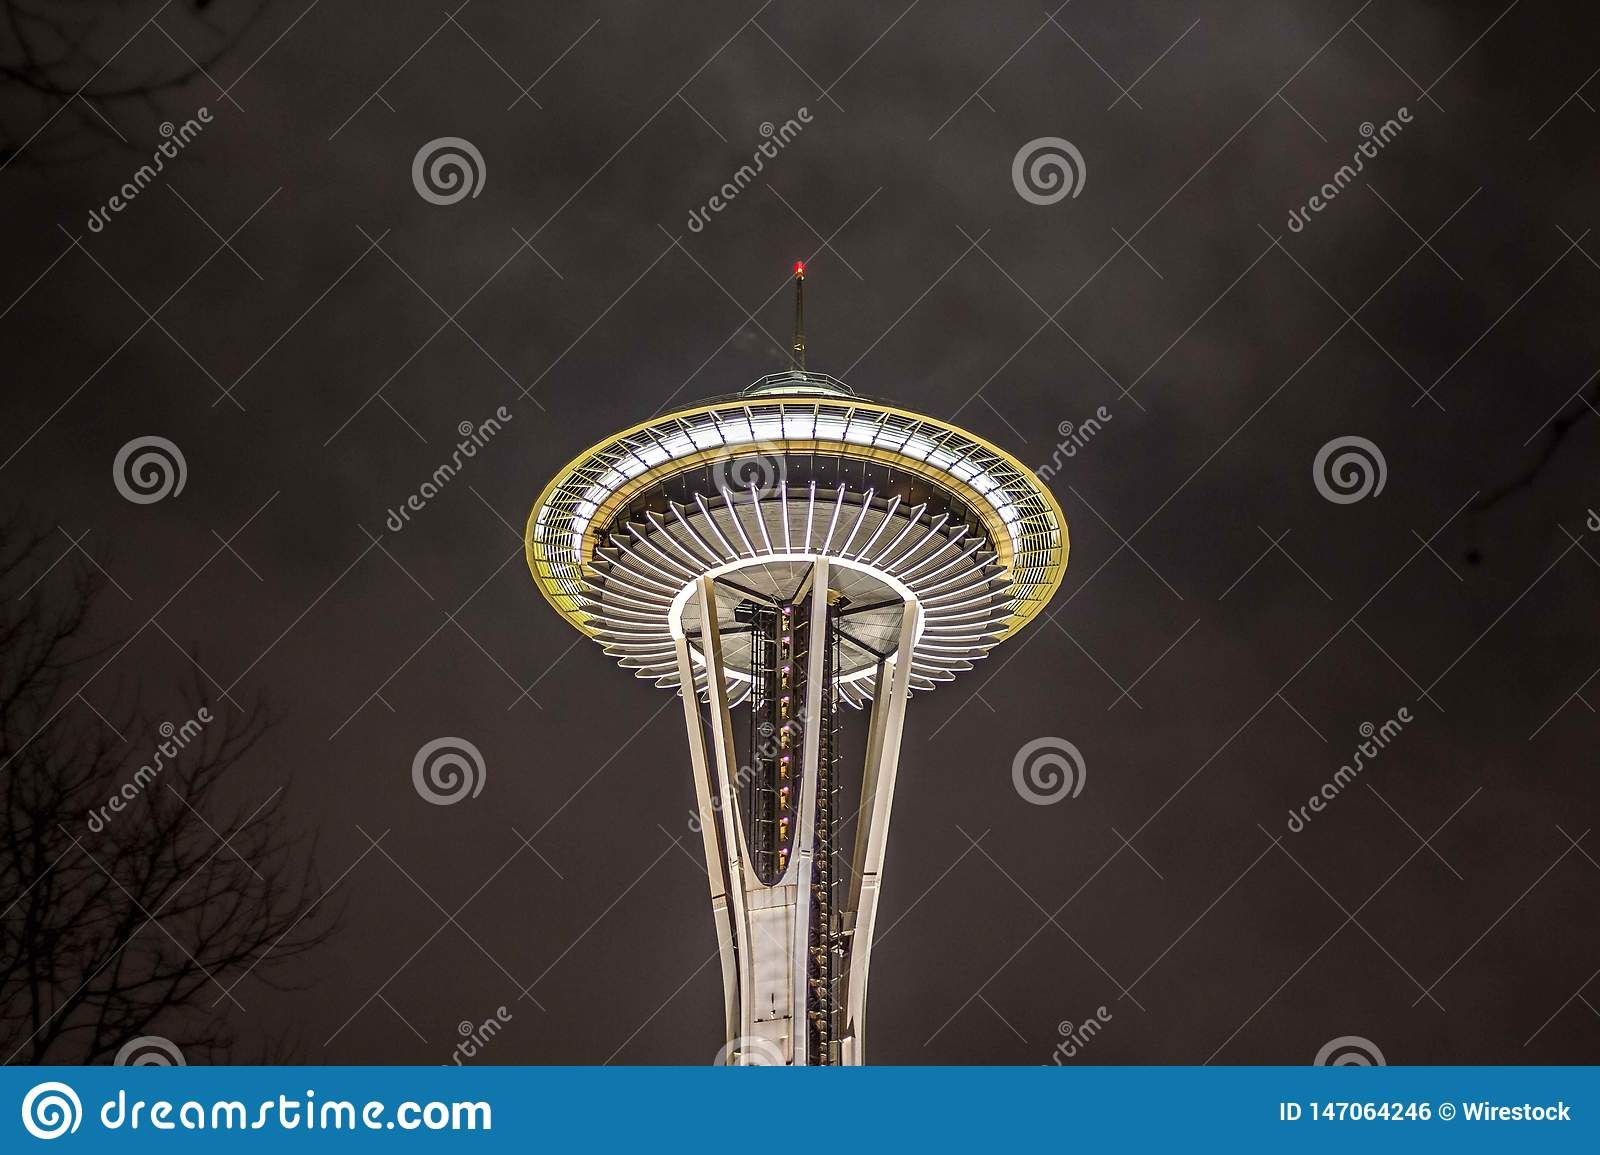 The Space Needle Tower in Seattle